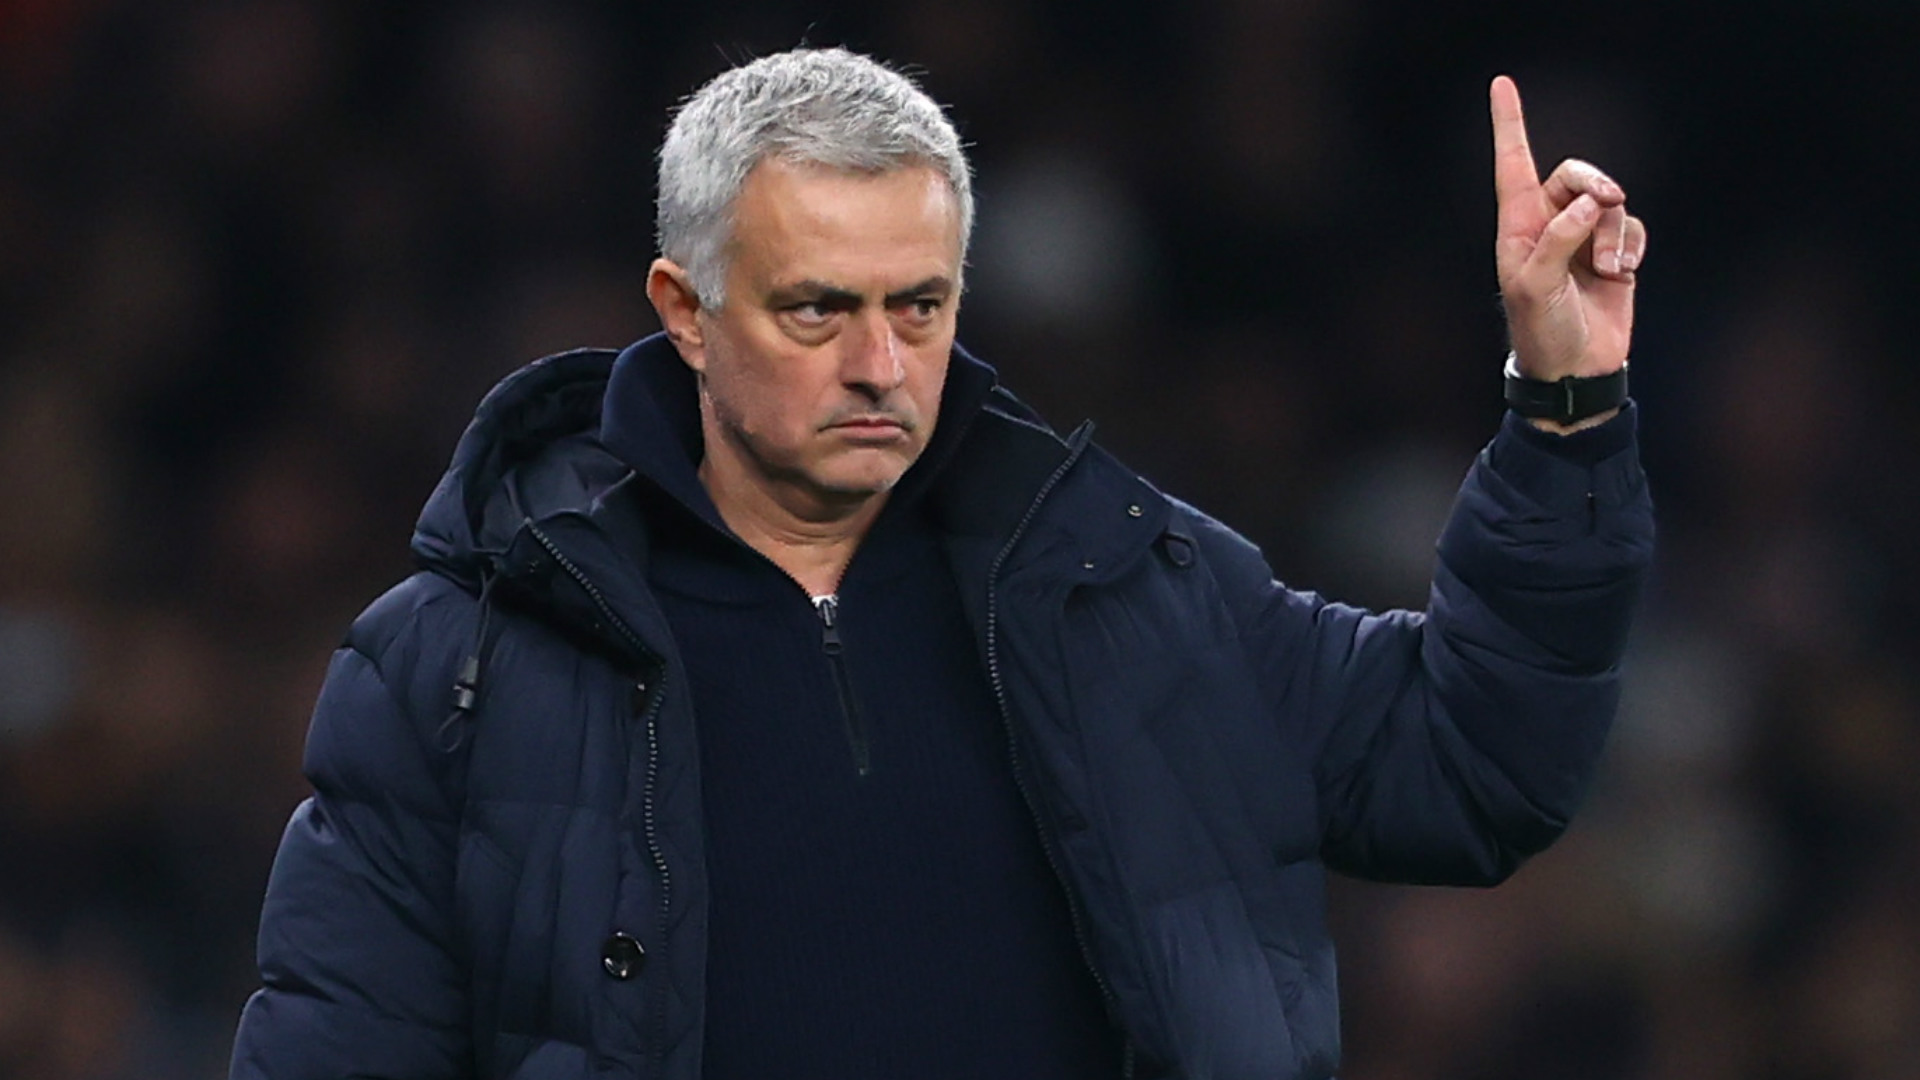 Mourinho Bills Himself As One Of The Most Important Managers In The Game As Spurs Boss Responds To Critics Goal Com